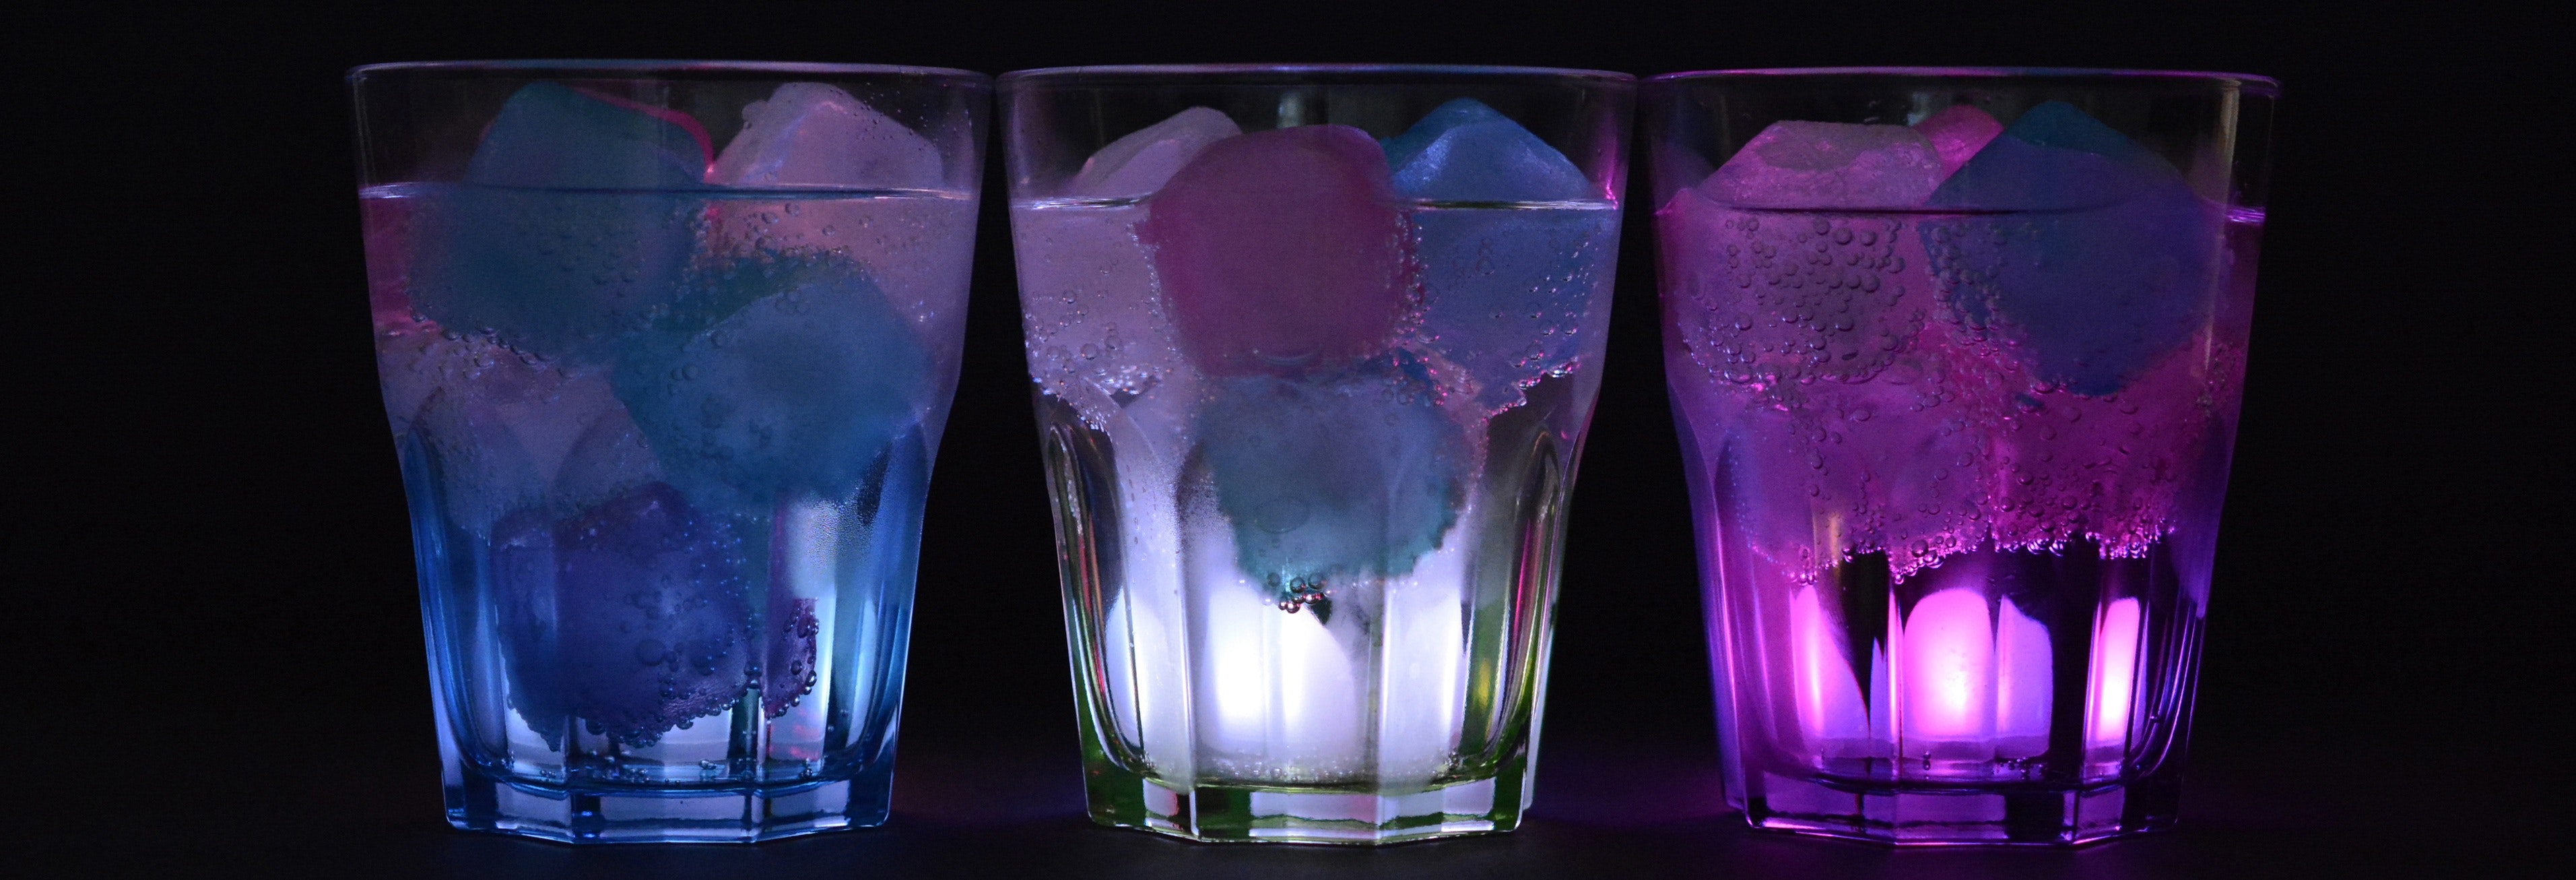 3 lighted clear drinking glass with beverage photo